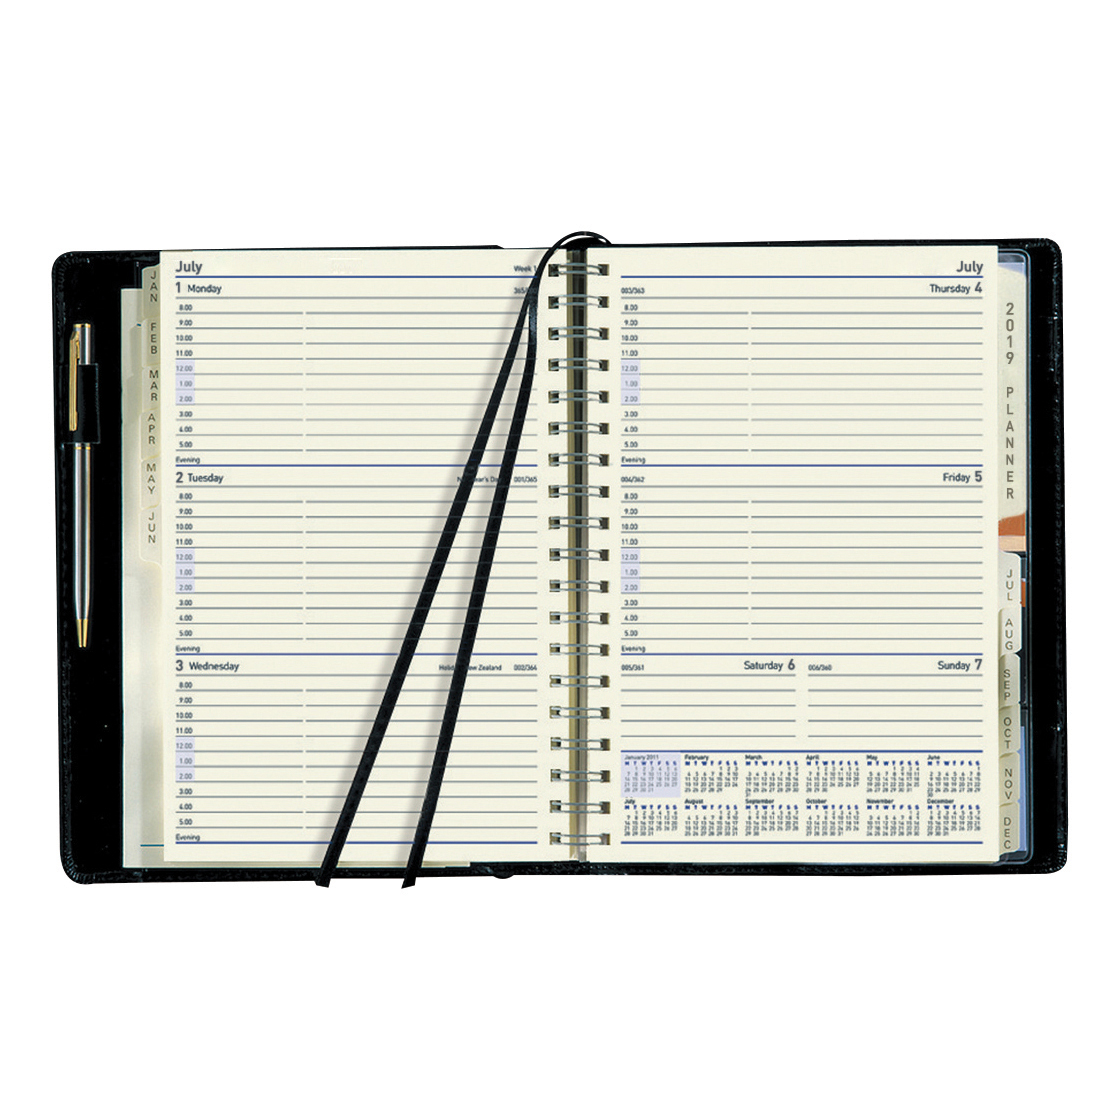 Collins 2019 Elite Compact Diary Week to View Wirobound Faux Leather Cover 127x190mm Black Ref 1150V 2019